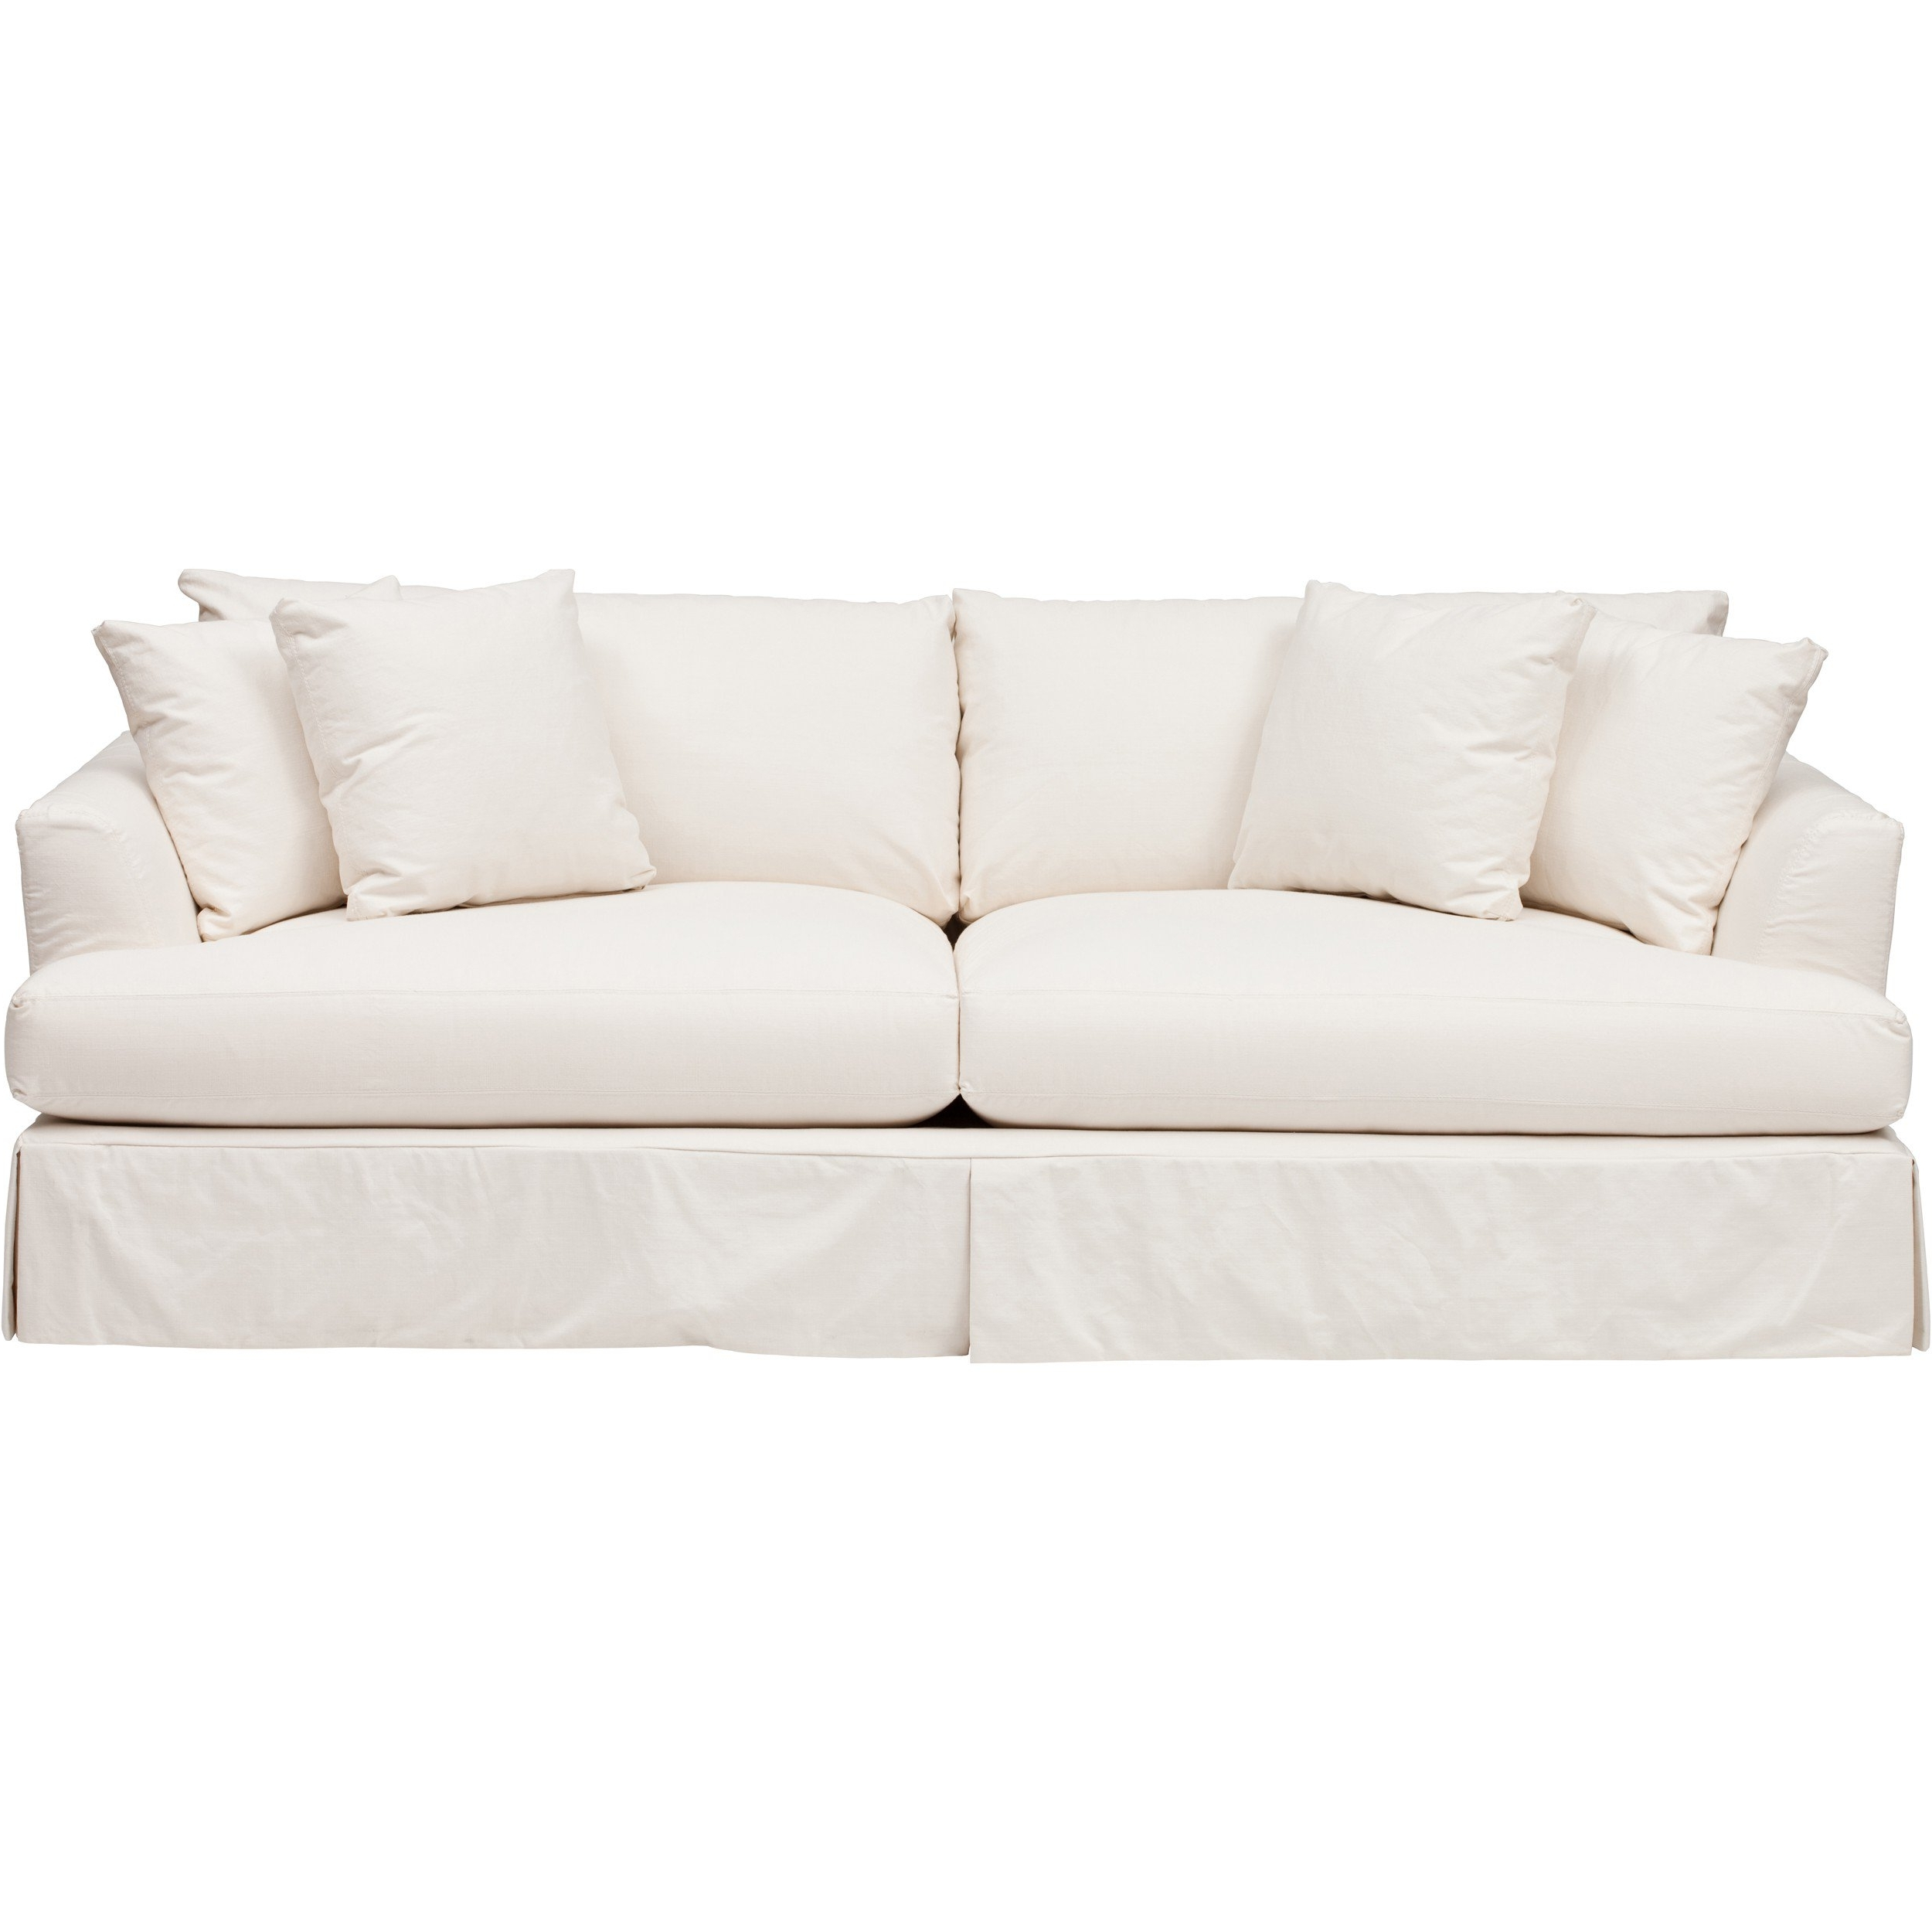 Well Known Slipcovers Sofas In Andre Slipcover Sofa, Dyno White – Sofas – Custom Upholstery (View 4 of 15)